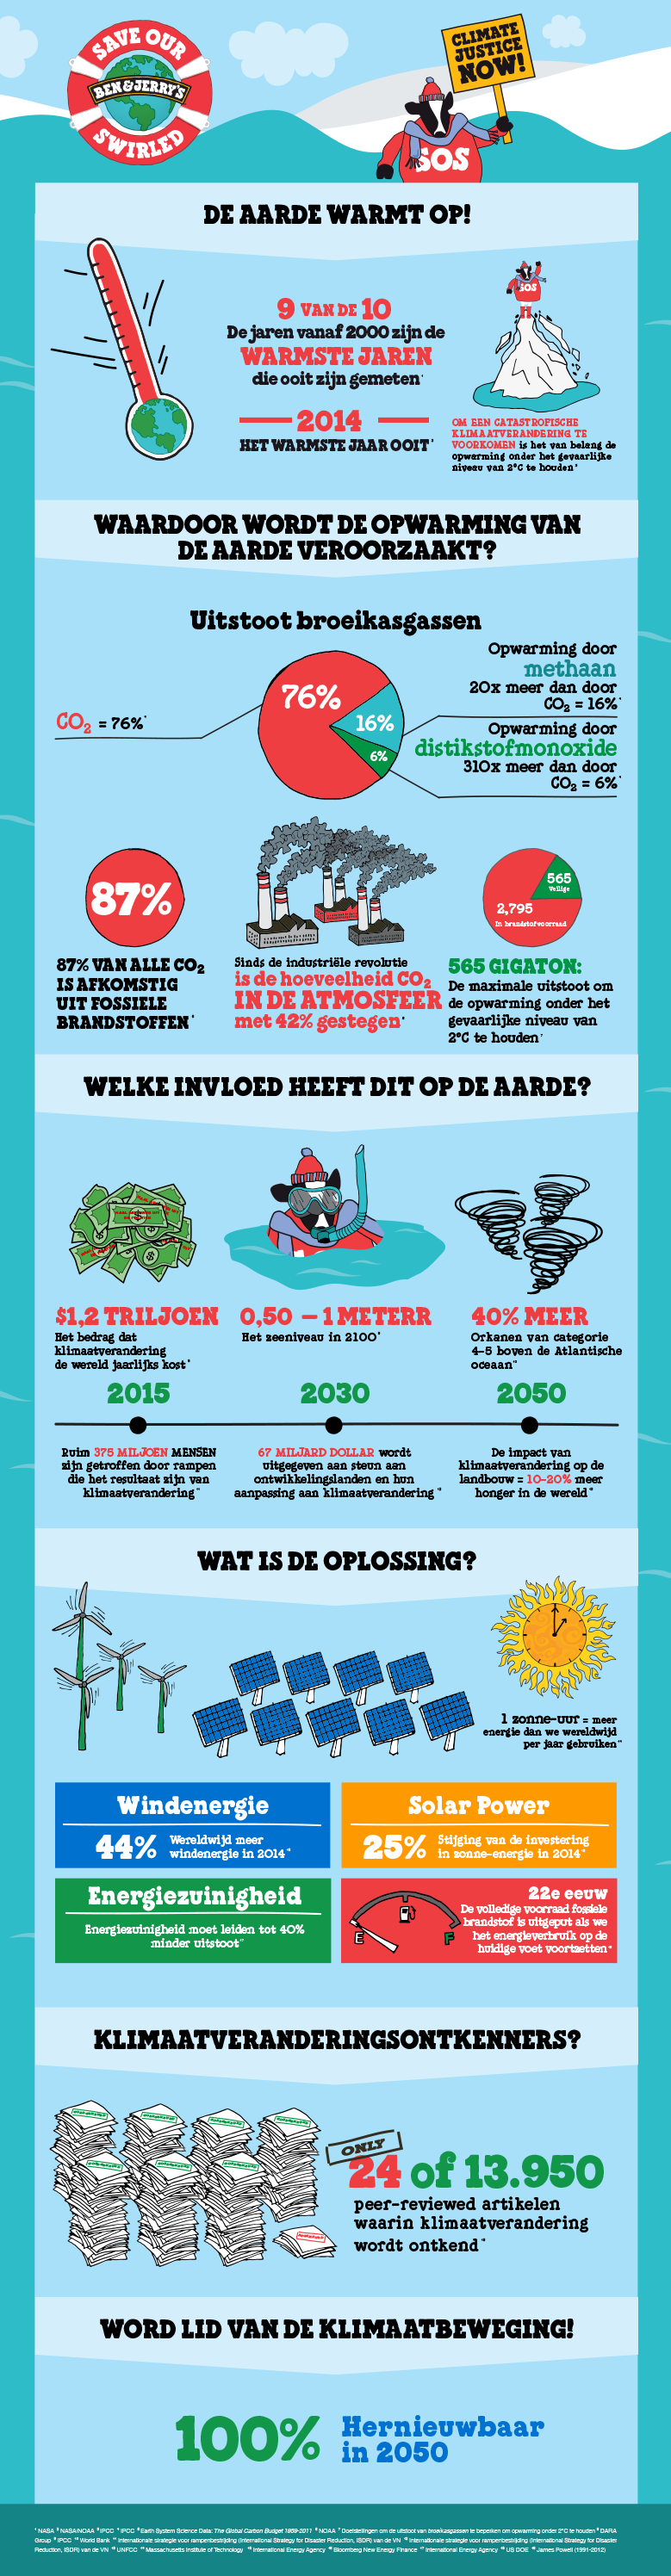 BJ_ClimateChange_Infographic_Dutch-(Netherlands).png